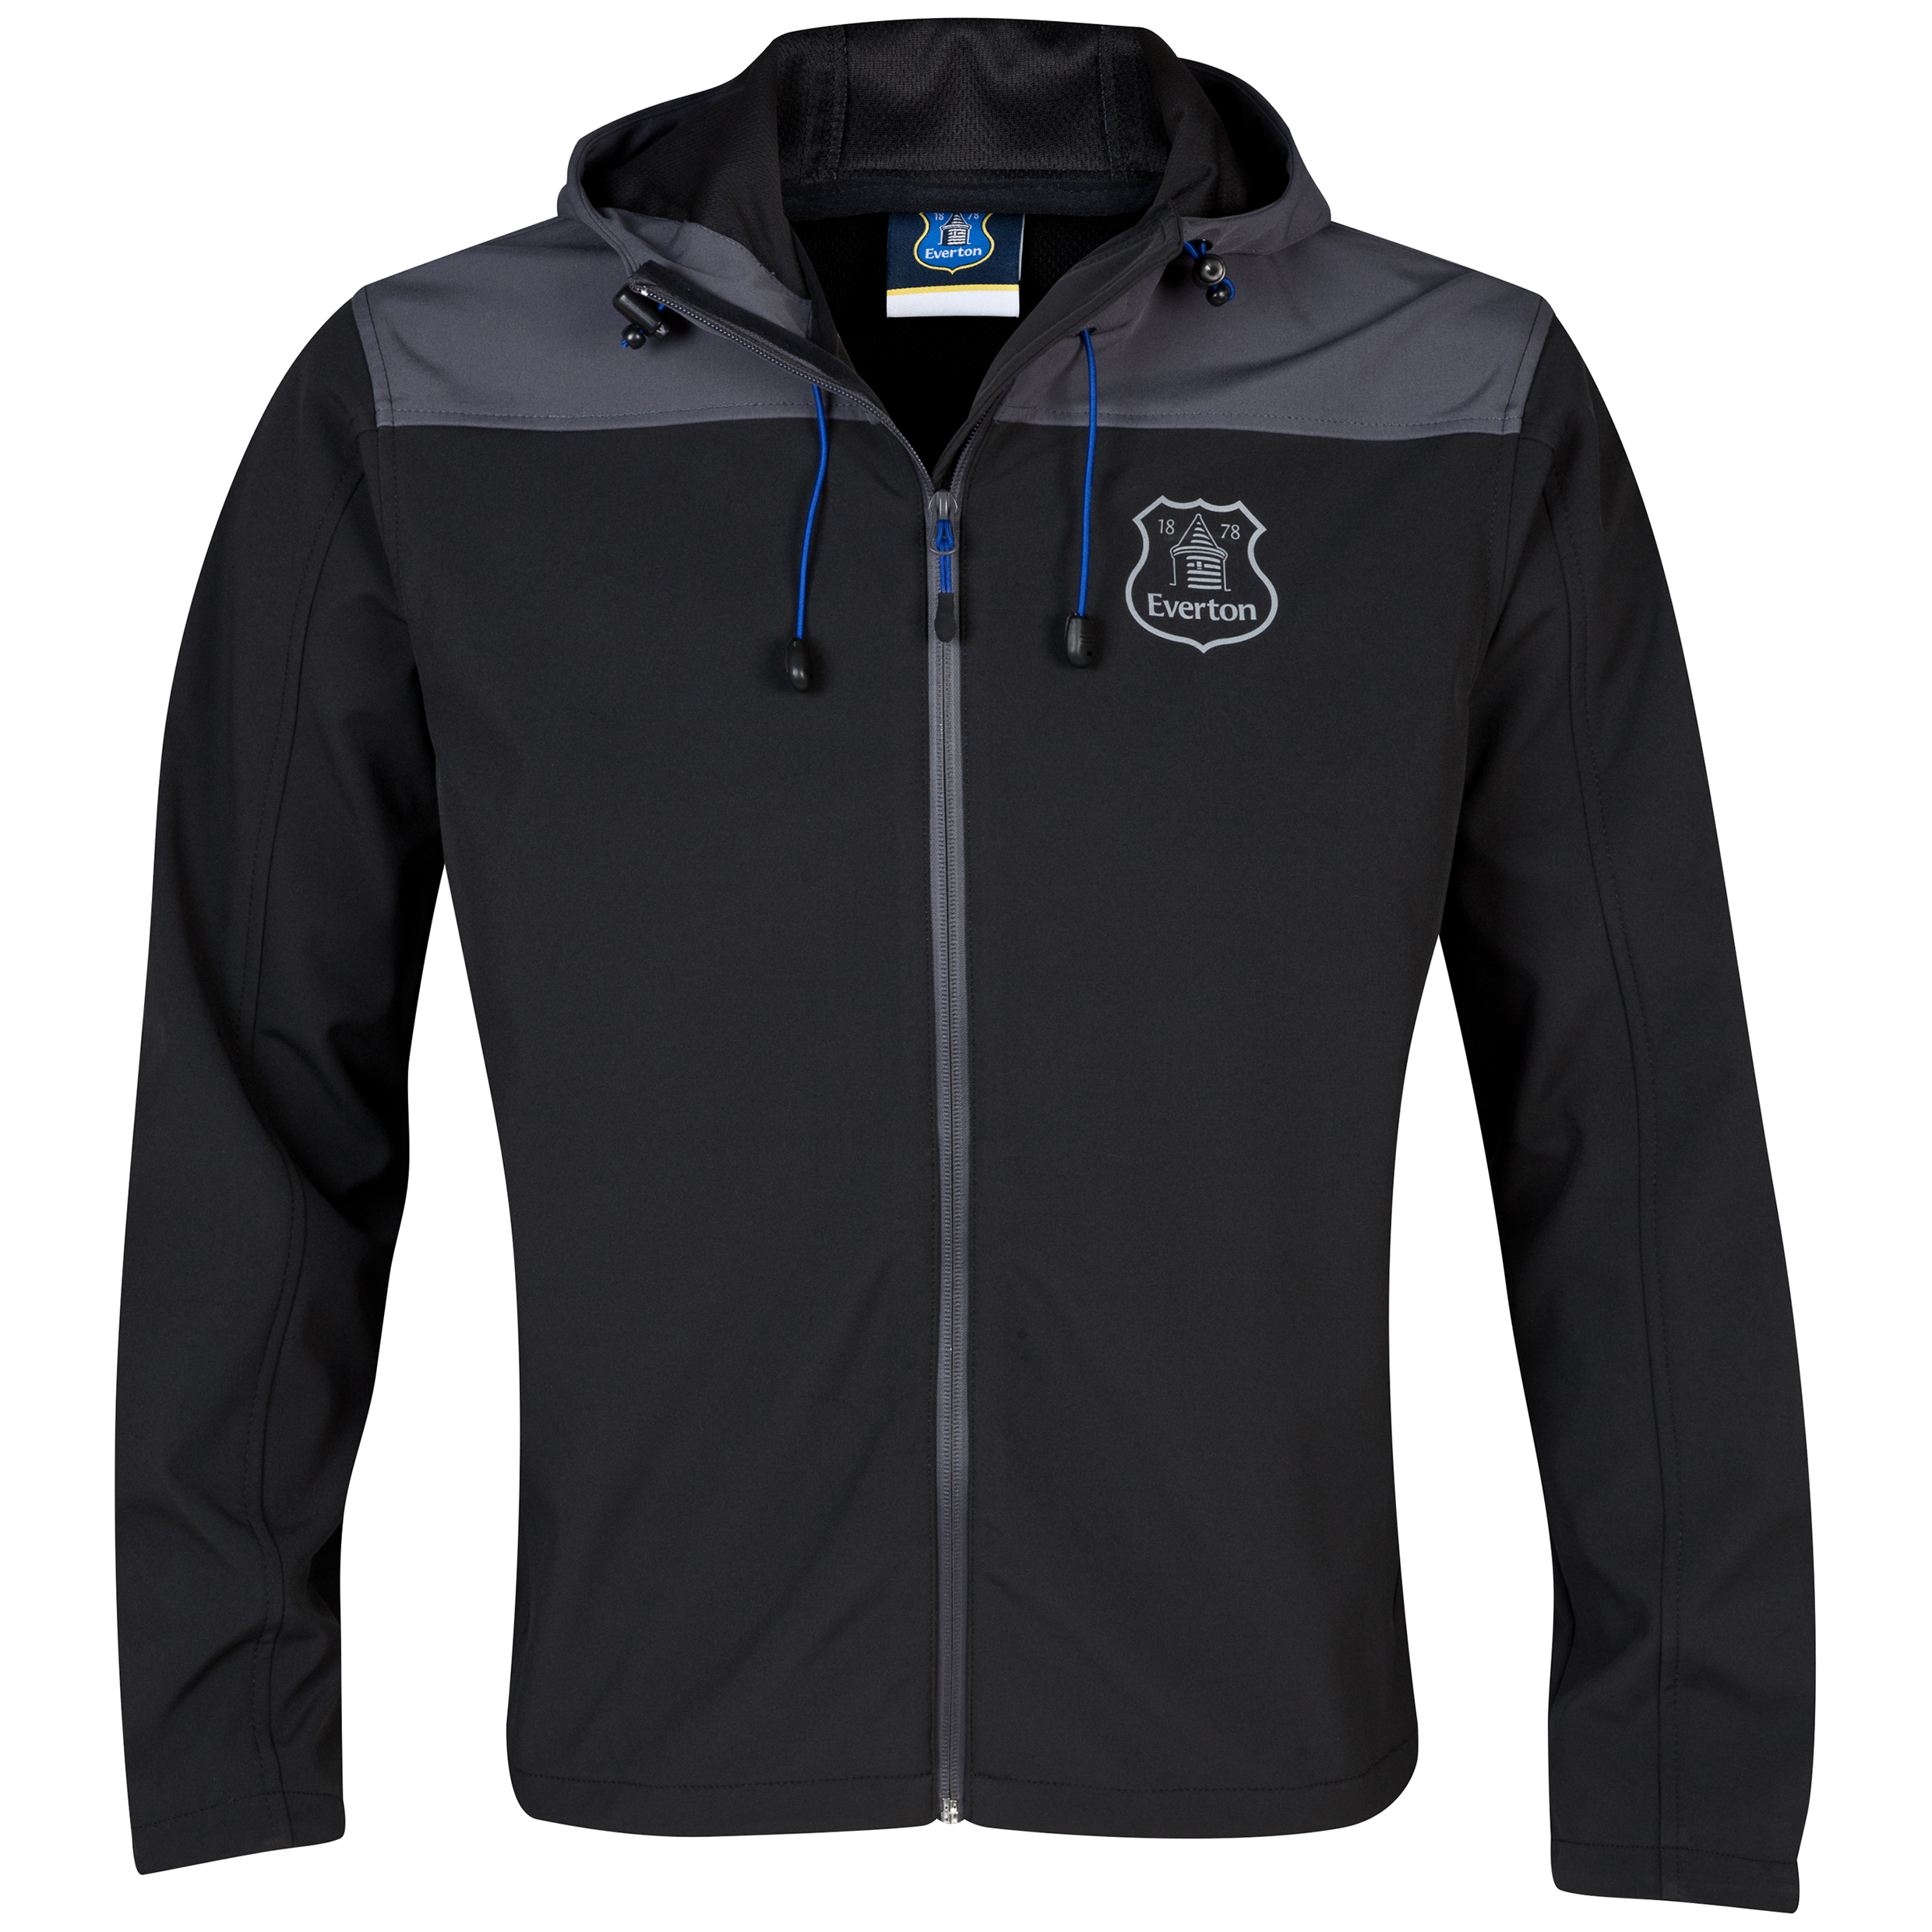 Everton Performance Surge Jacket - Mens Black